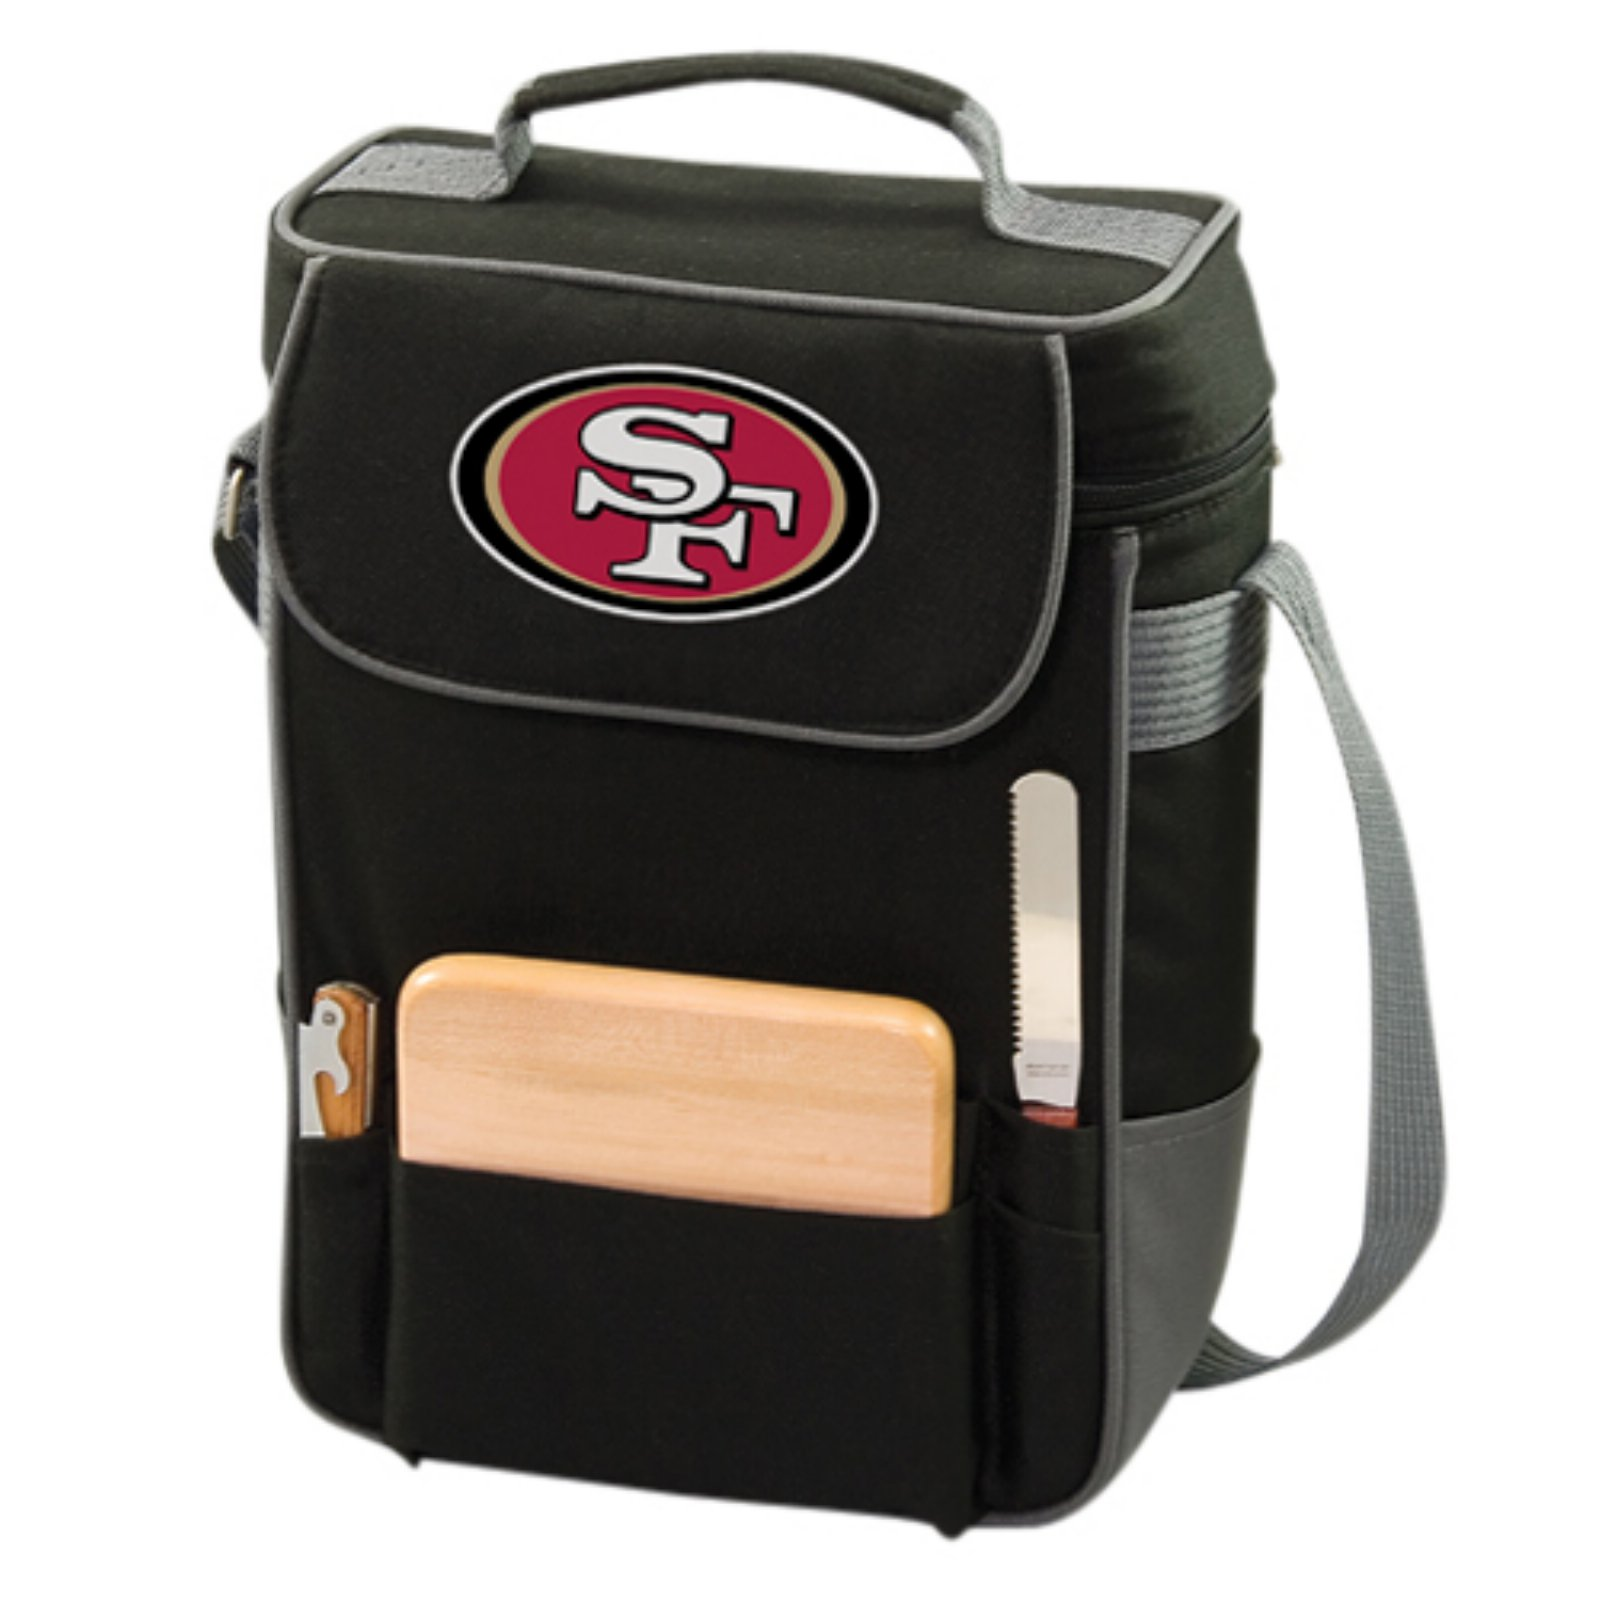 Picnic Time NFL Duet Wine and Cheese Tote